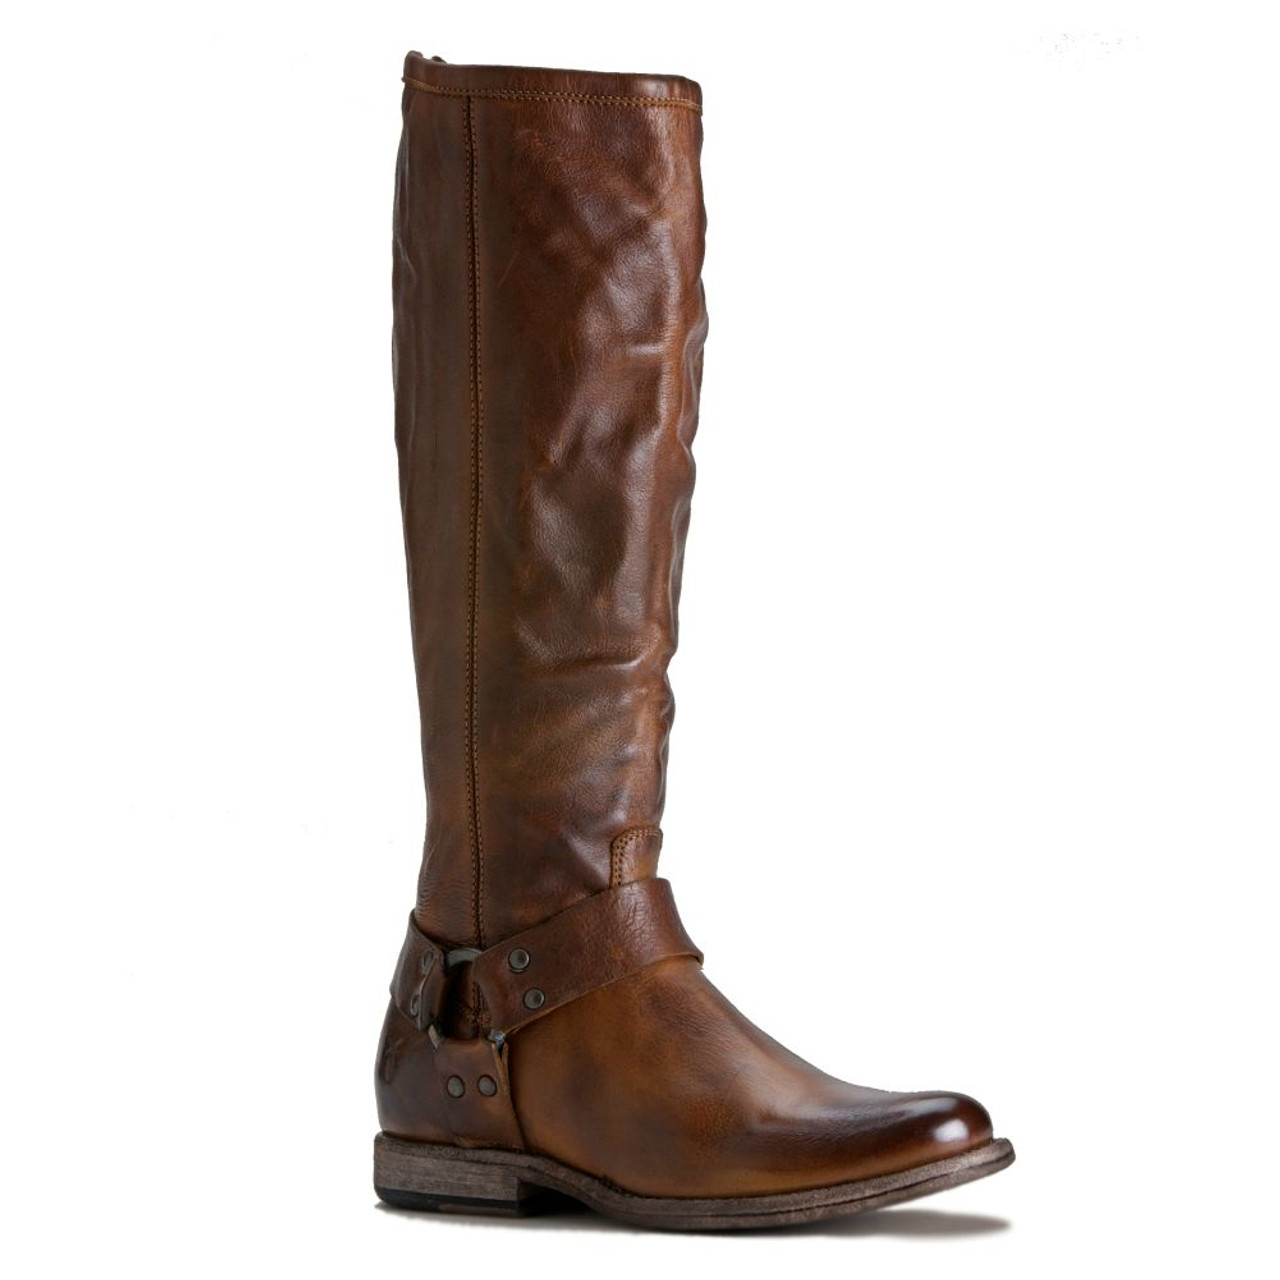 76850 cog__02496.1488874446?c=2&imbypass=on new frye phillip harness tall cognac soft vintage leather boots